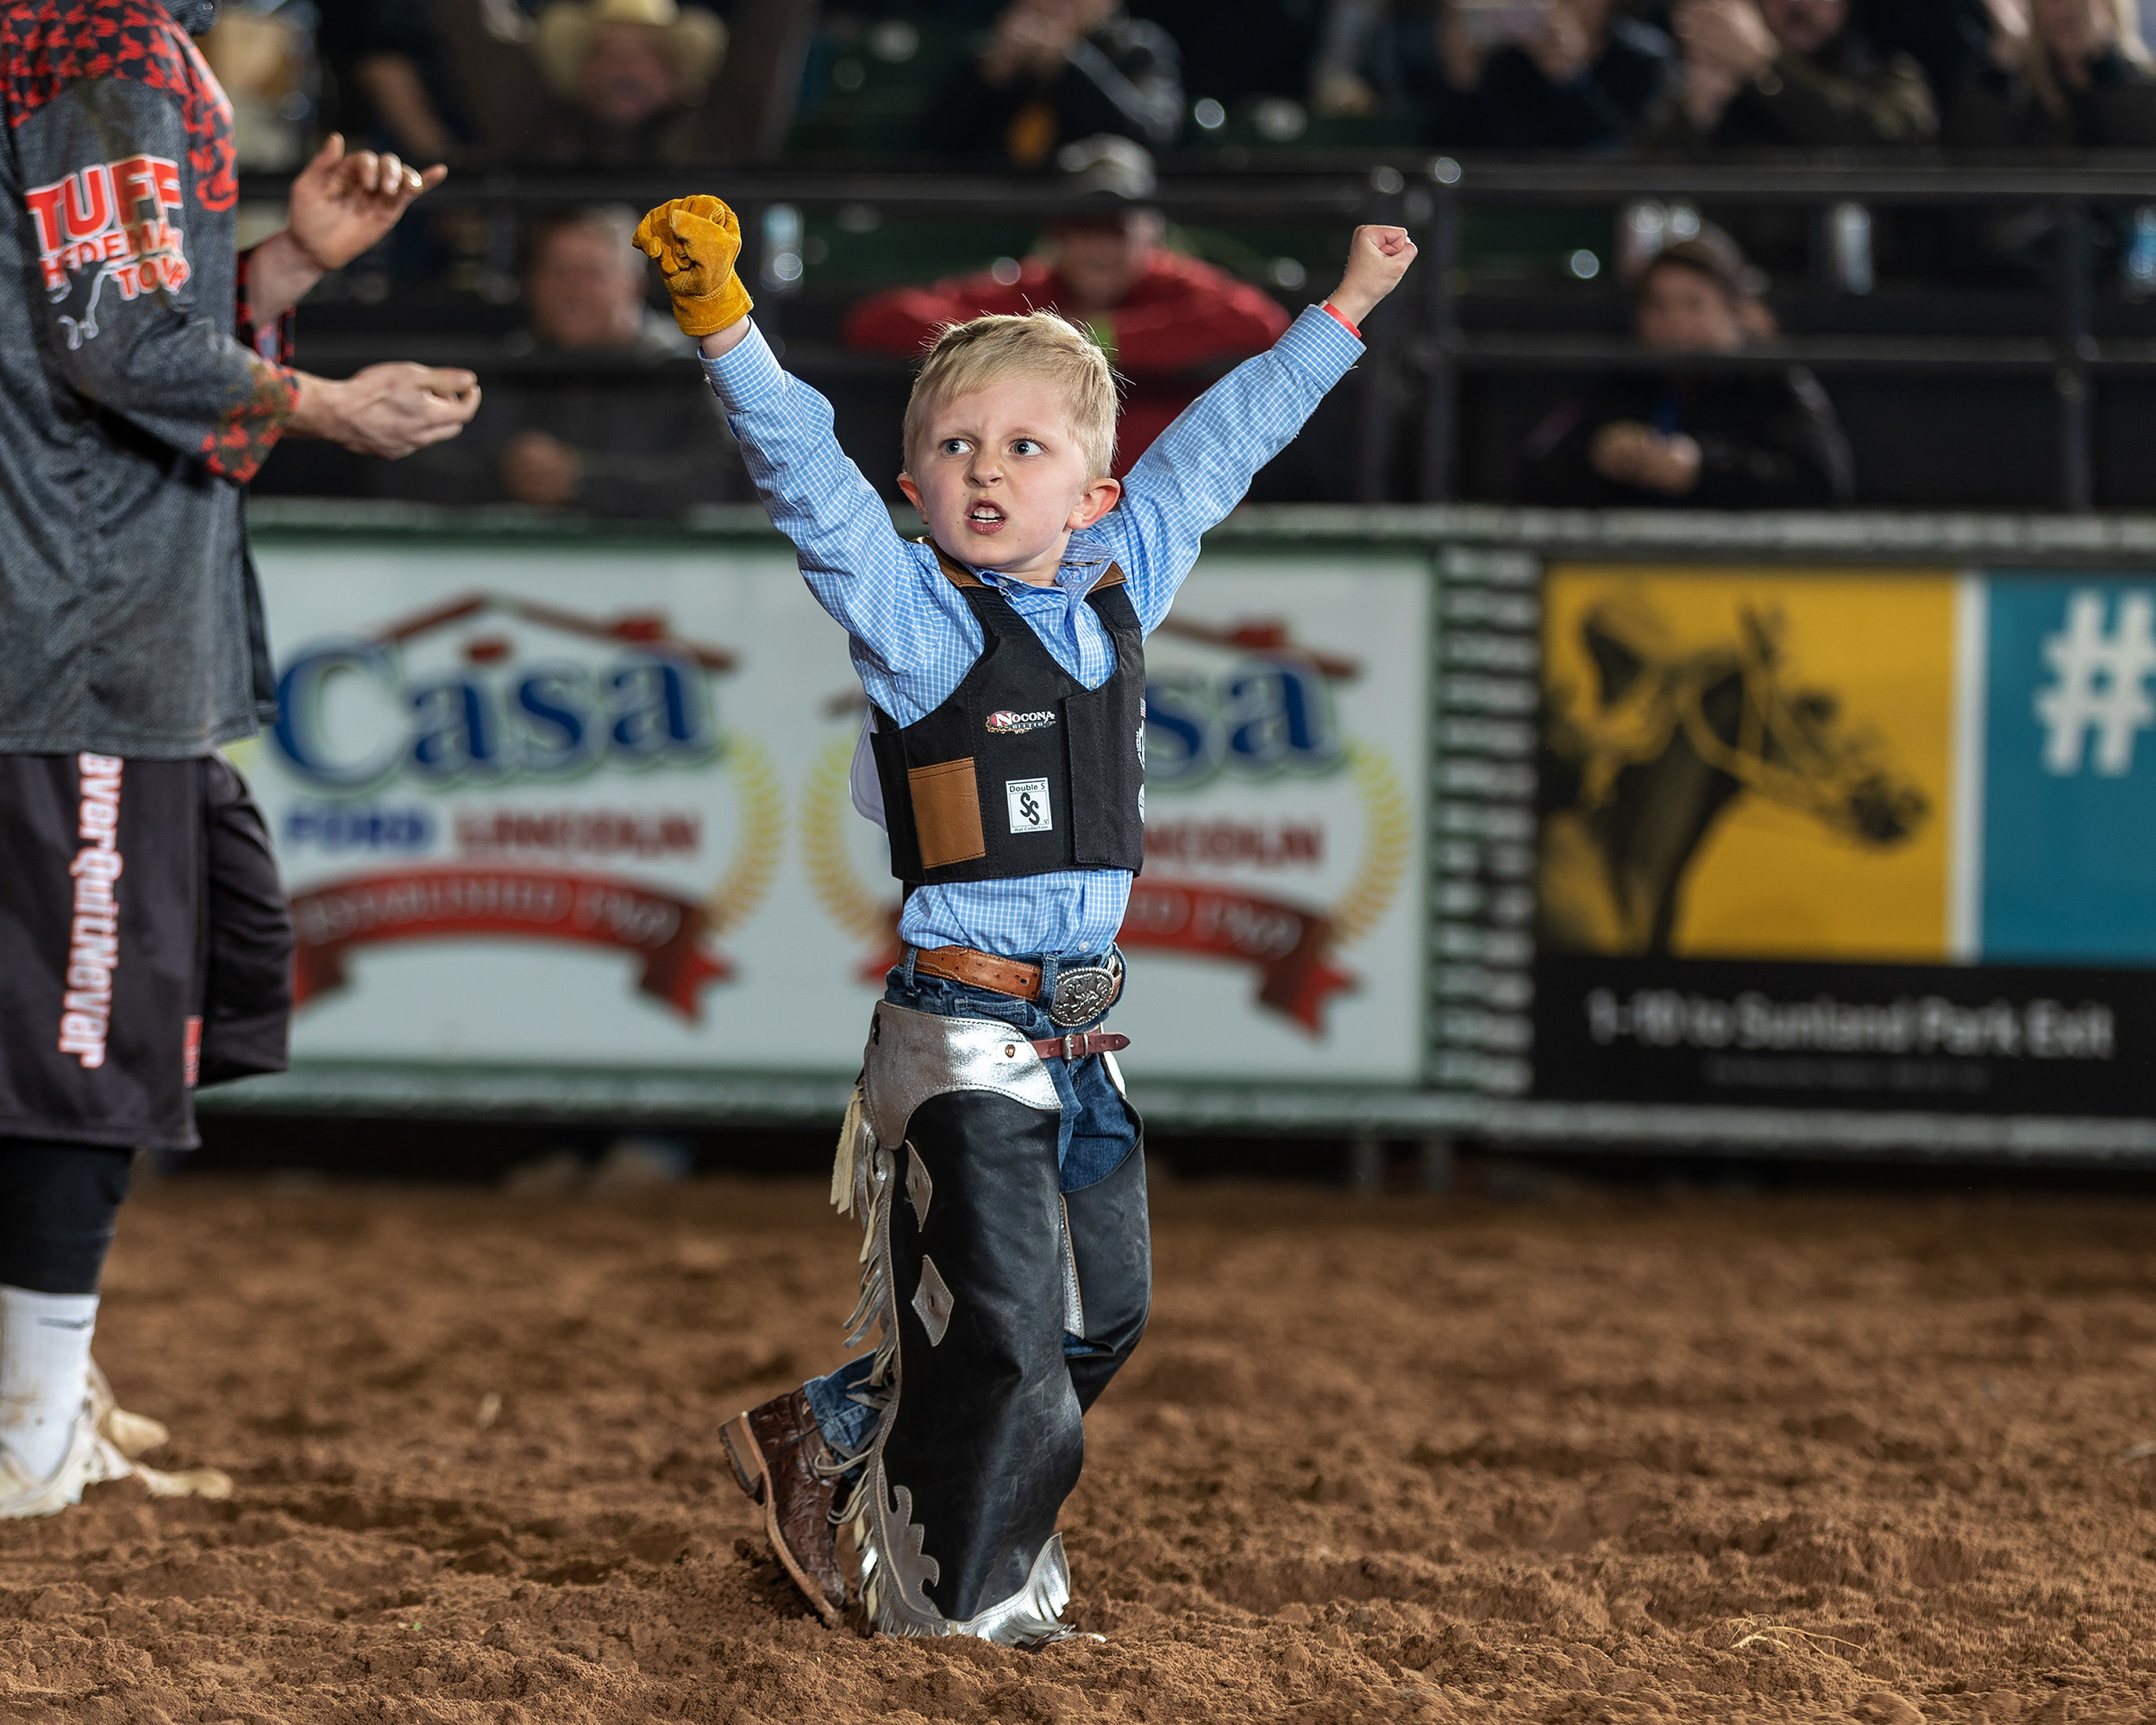 Budding bull riders (girls and boys) age 6 and under can enter the Tuff Hedeman Challenge Stick Bull Riding by emailing stickbullrider@aol.com. Winner receives Tuff Hedeman Trophy Buckle.